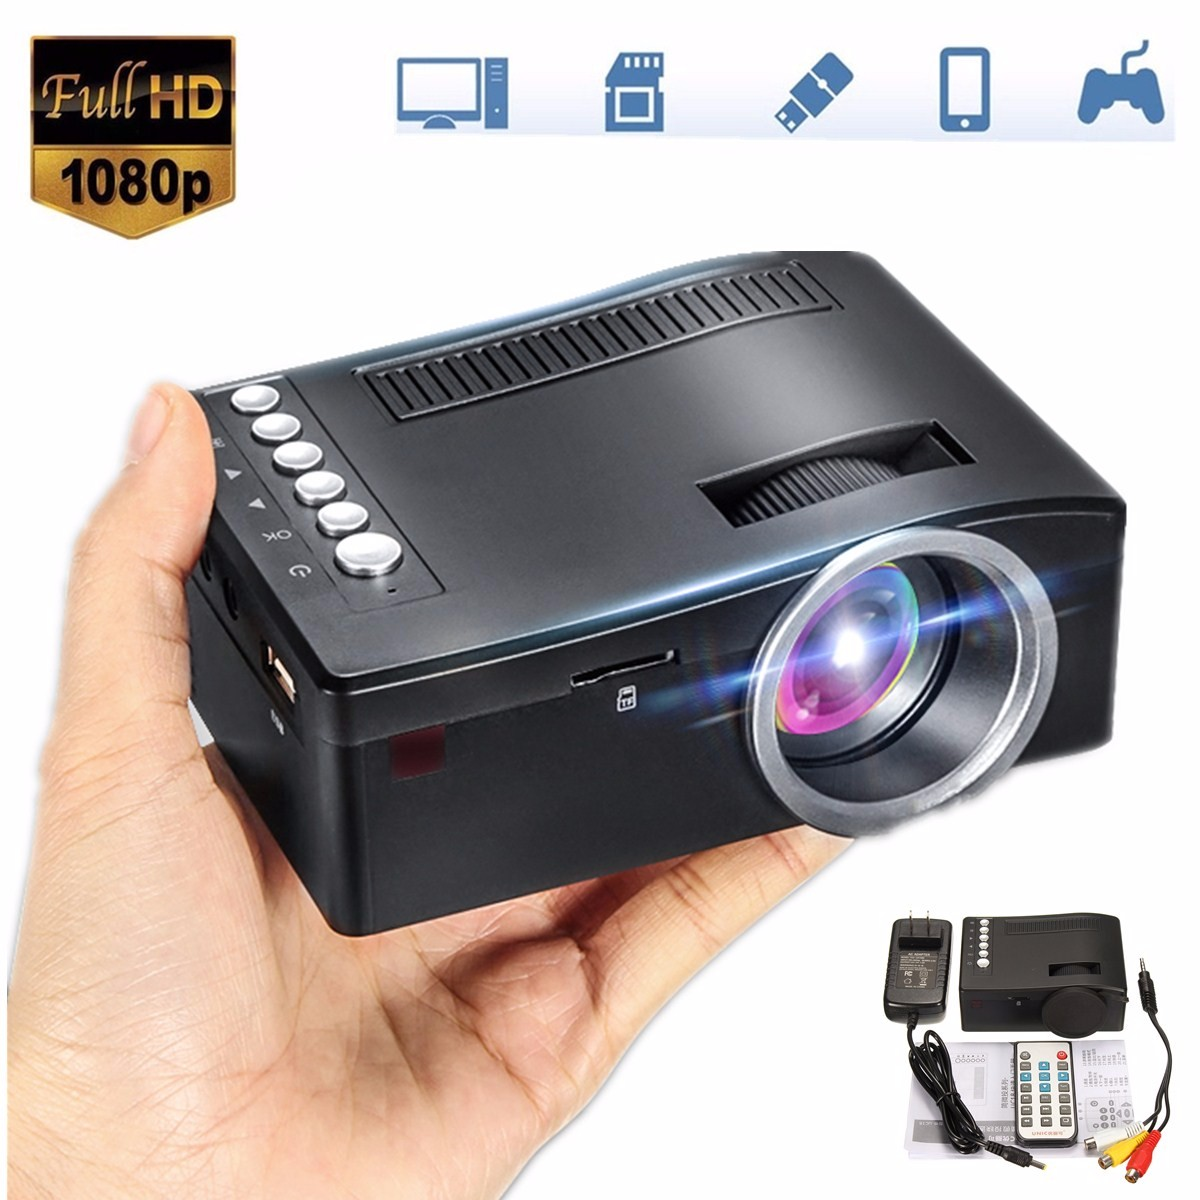 Mini Cinema Home Theater System 1080P HD Multimedia Projector TV AV USB TF HDMI PC LED Digital Pocket Home Projector Home home mini cinema portable 1080p 3d hd led projector multimedia home theater usb vga hdmi tv home theatre system